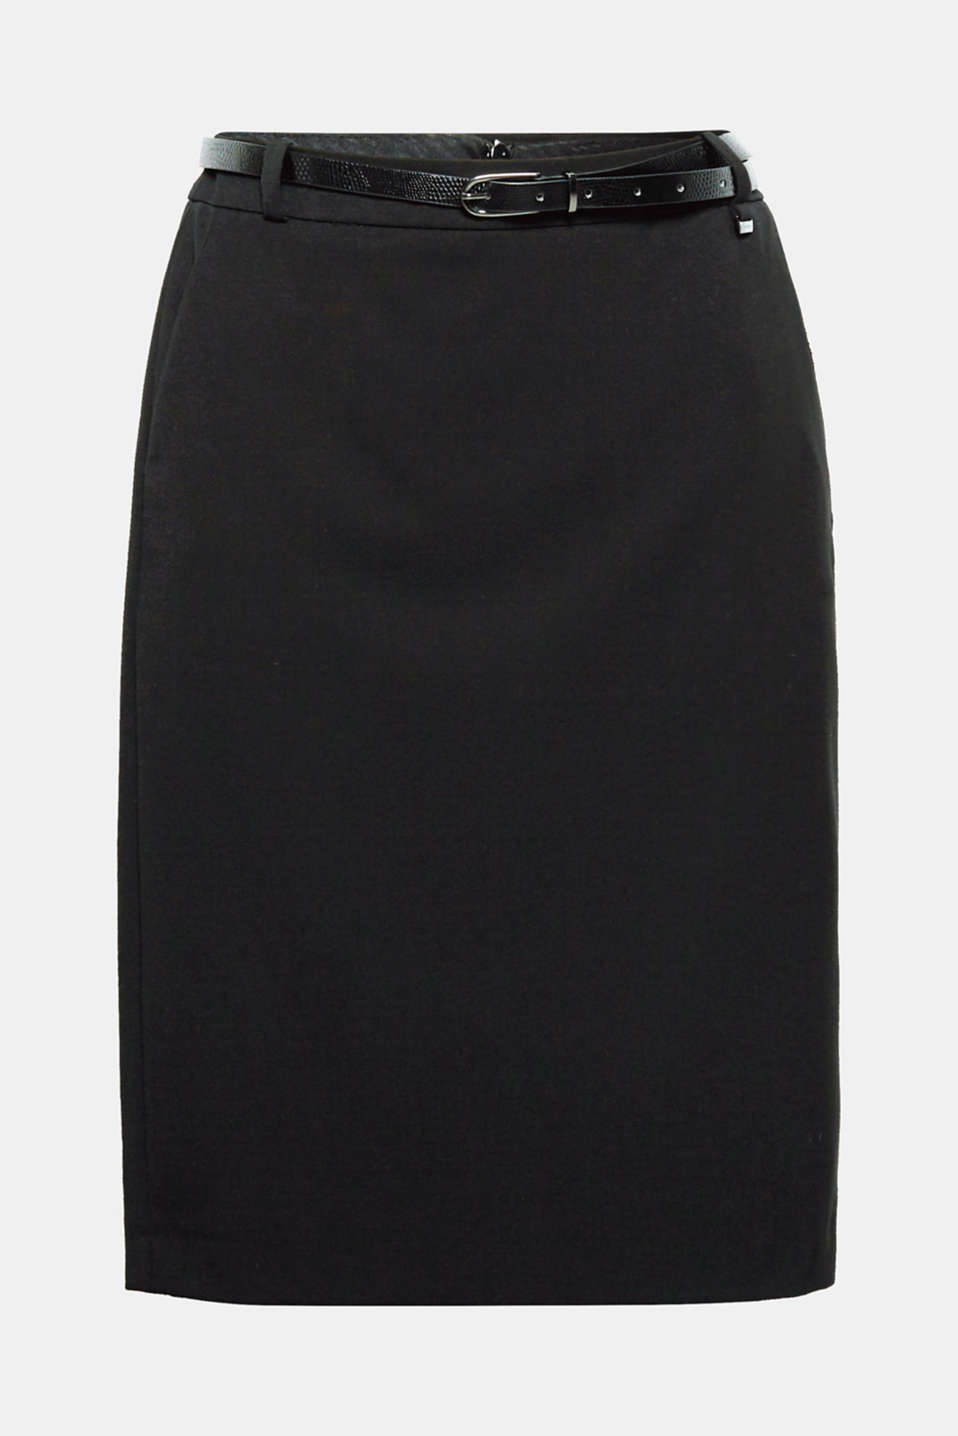 This classic pencil skirt with added stretch for comfort and a crocodile effect belt is a must have for jobs and events!